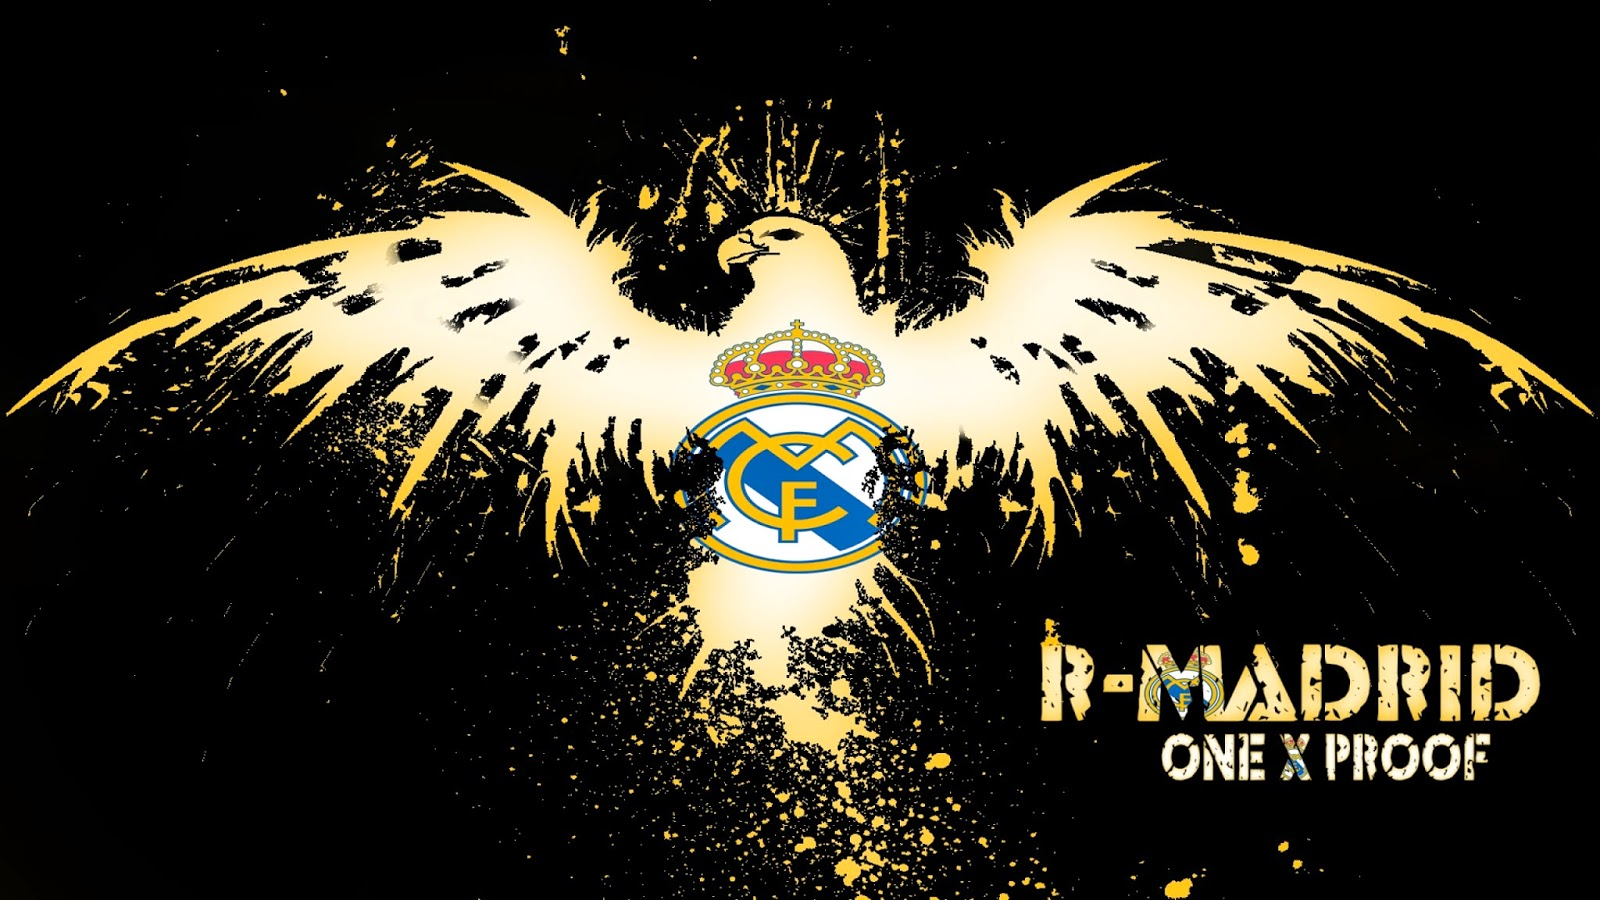 Real%2BMadrid%2BClub%2BWallpaper 4